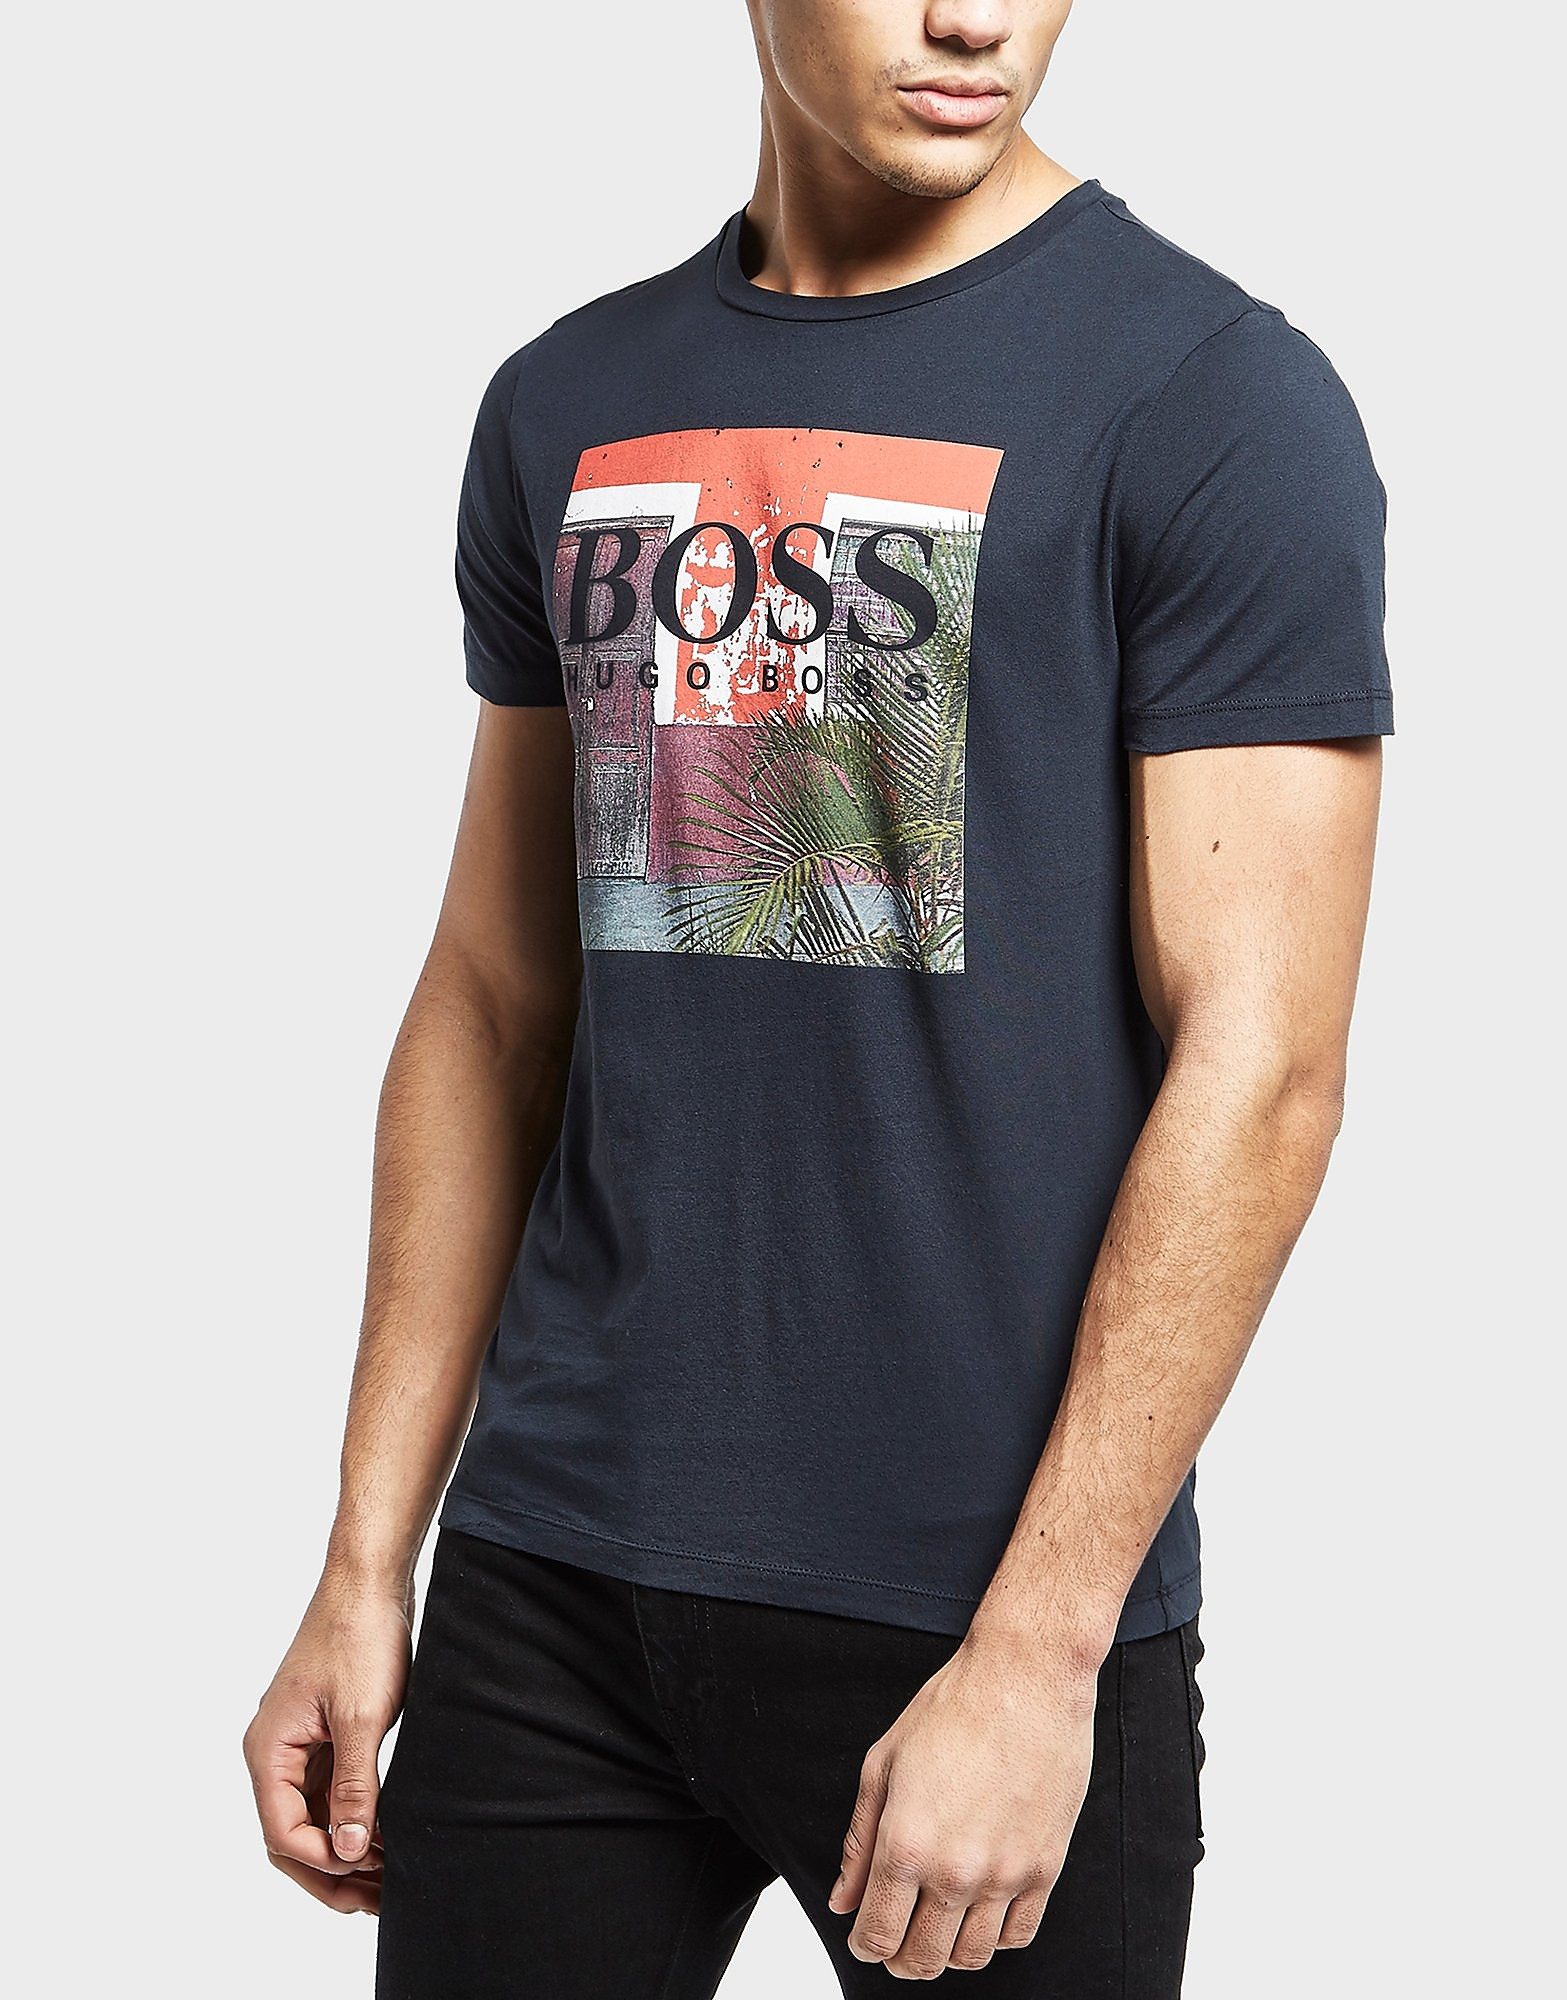 BOSS Orange Palm Short Sleeve T-Shirt